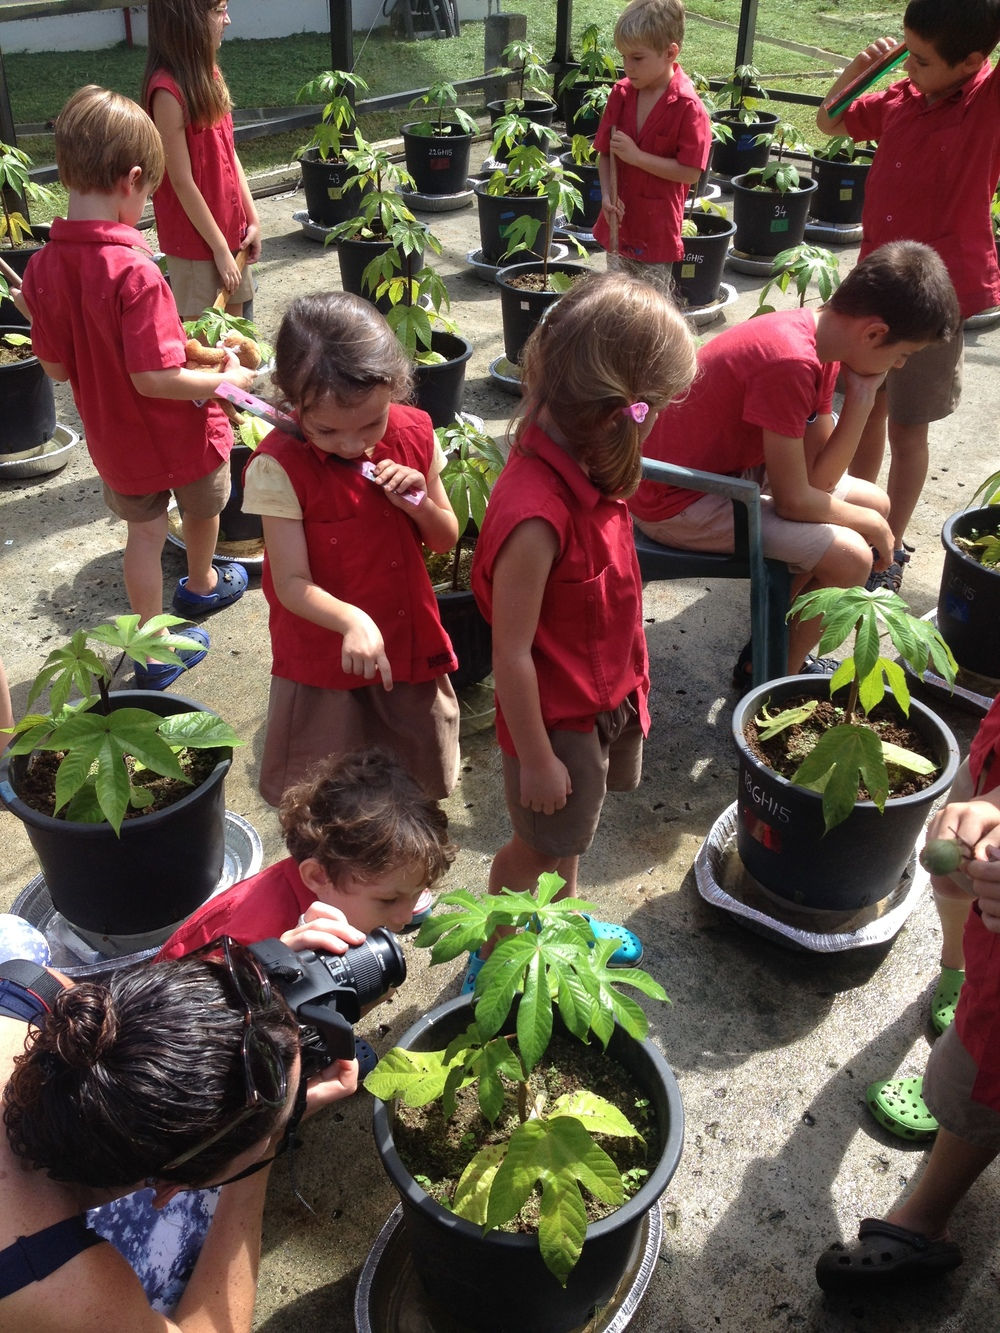 Gamboa Discovery School explores the transplanted greenhouse colonies